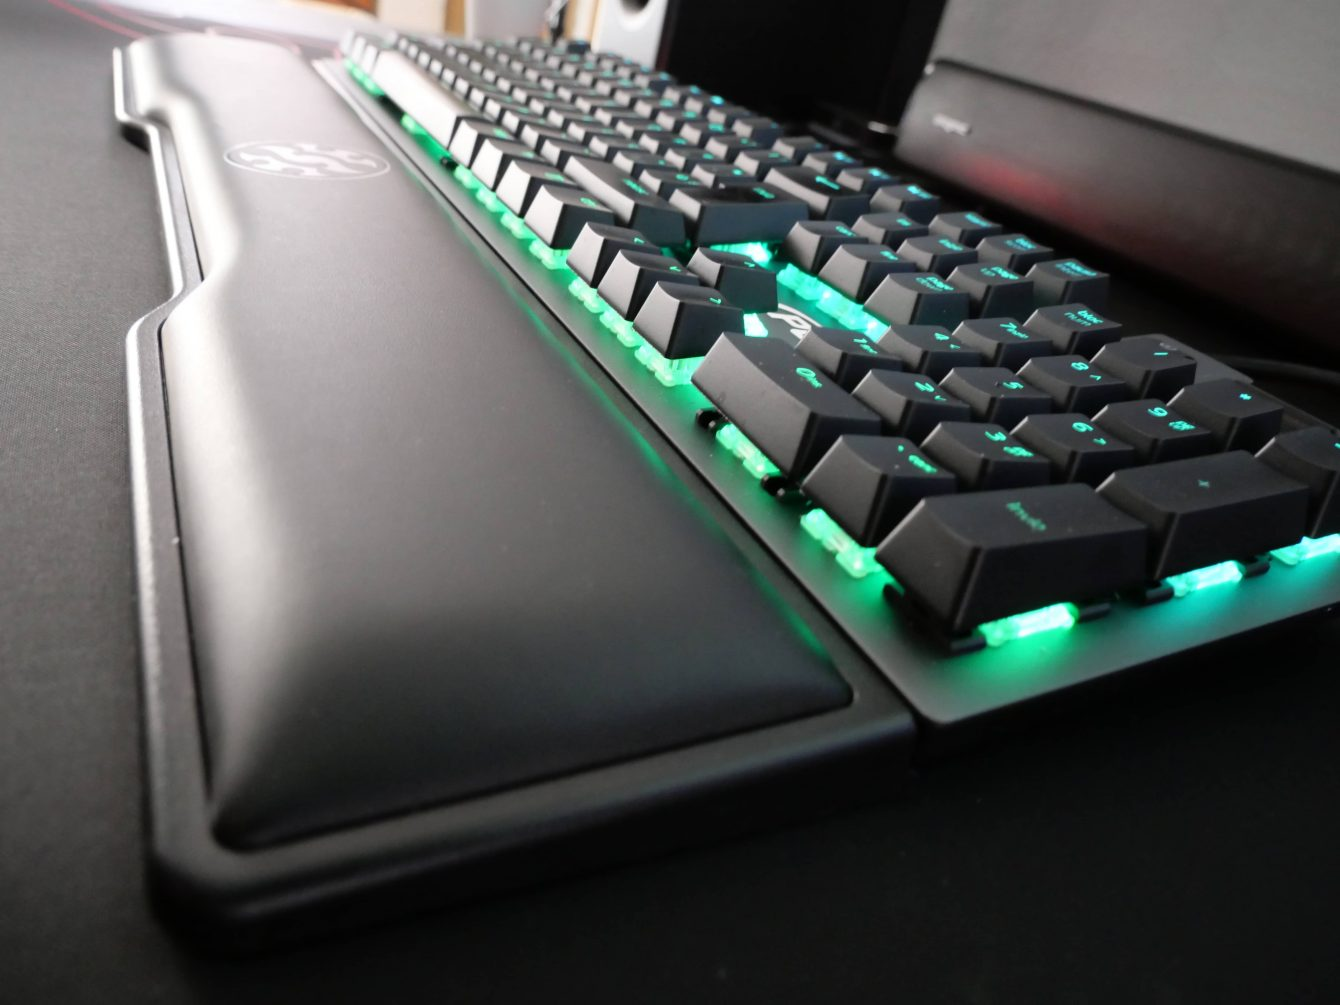 XPG SUMMONER review: the keyboard you don't expect